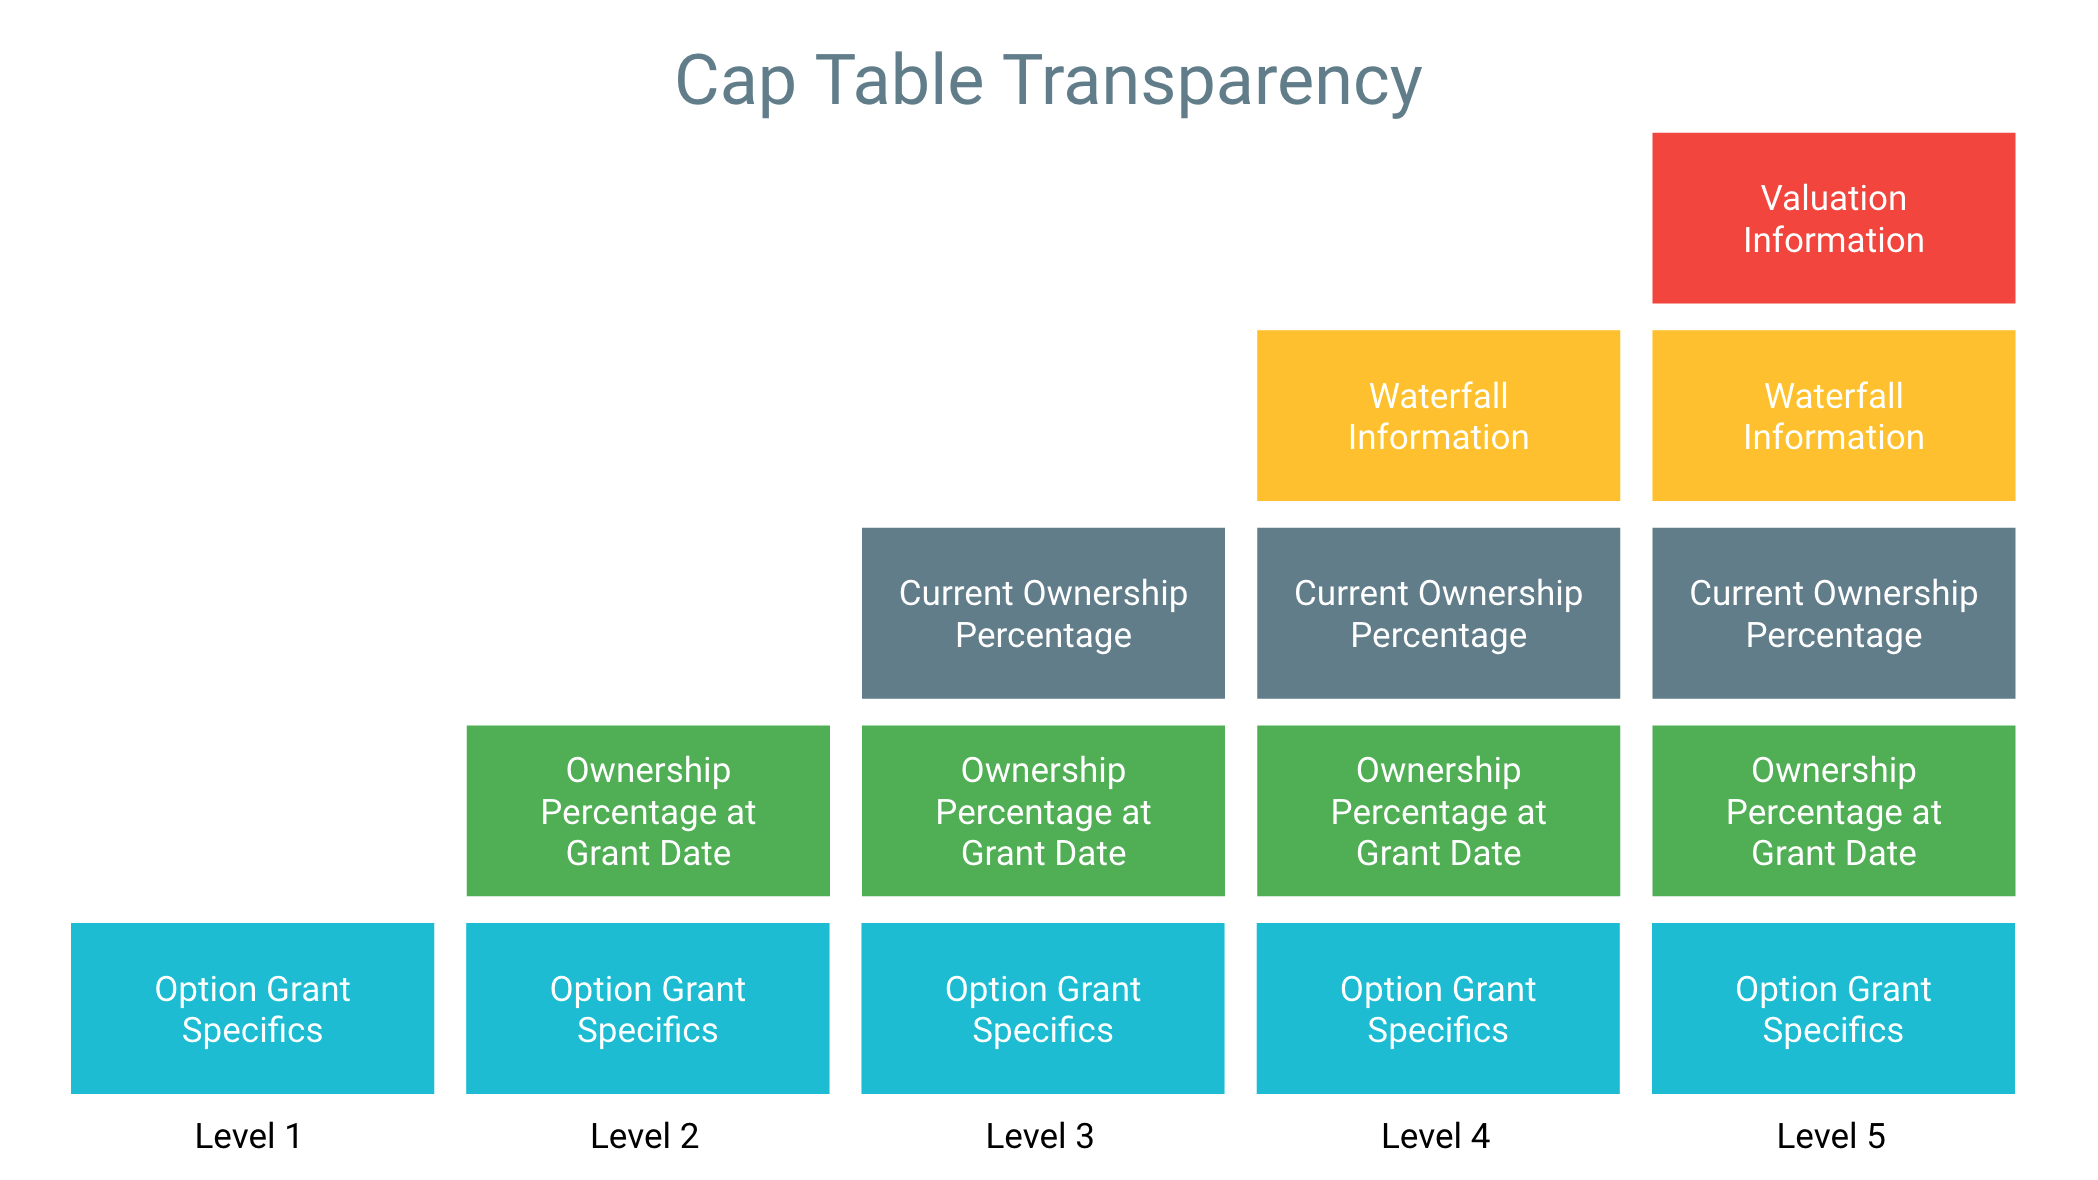 Cap Table Transparency